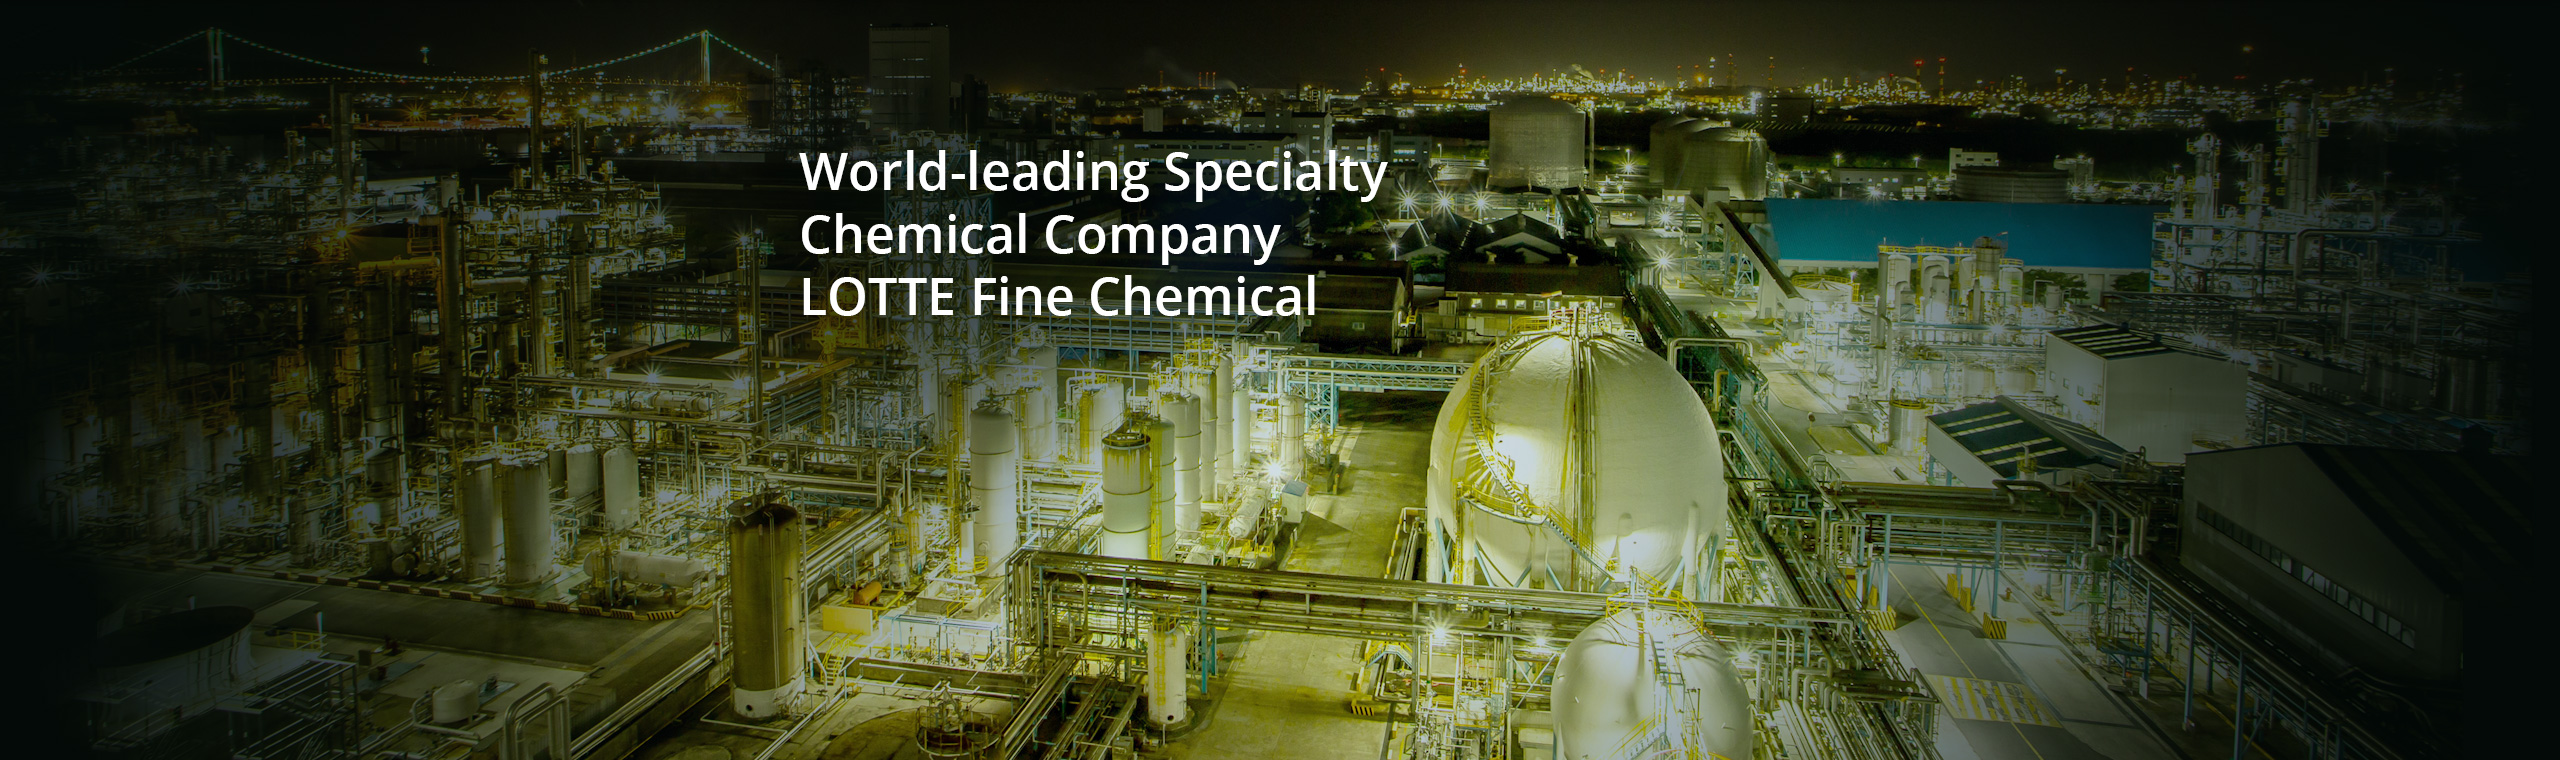 LOTTE FINE CHEMICAL | LOTTE FINE CHEMICAL